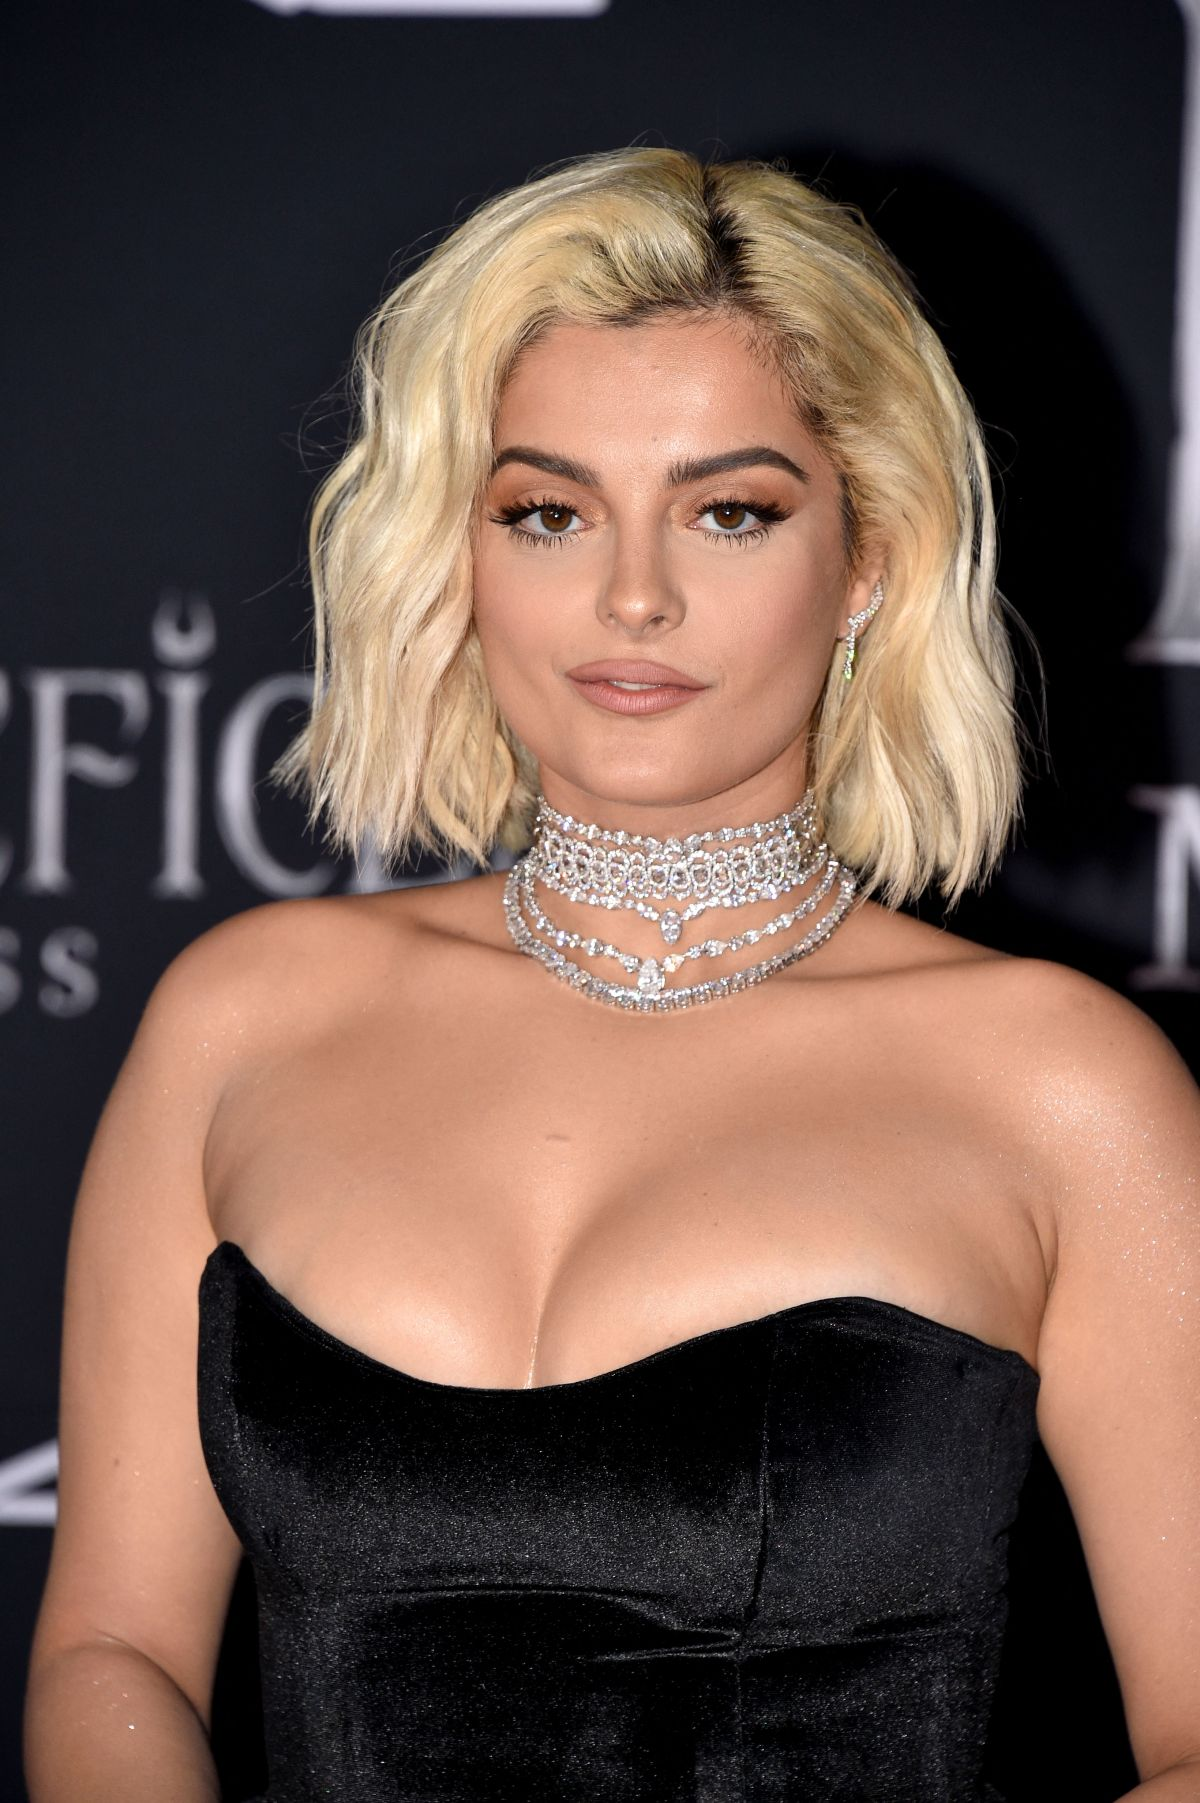 Bebe Rexha At Maleficent Mistress Of Evil Premiere In Los